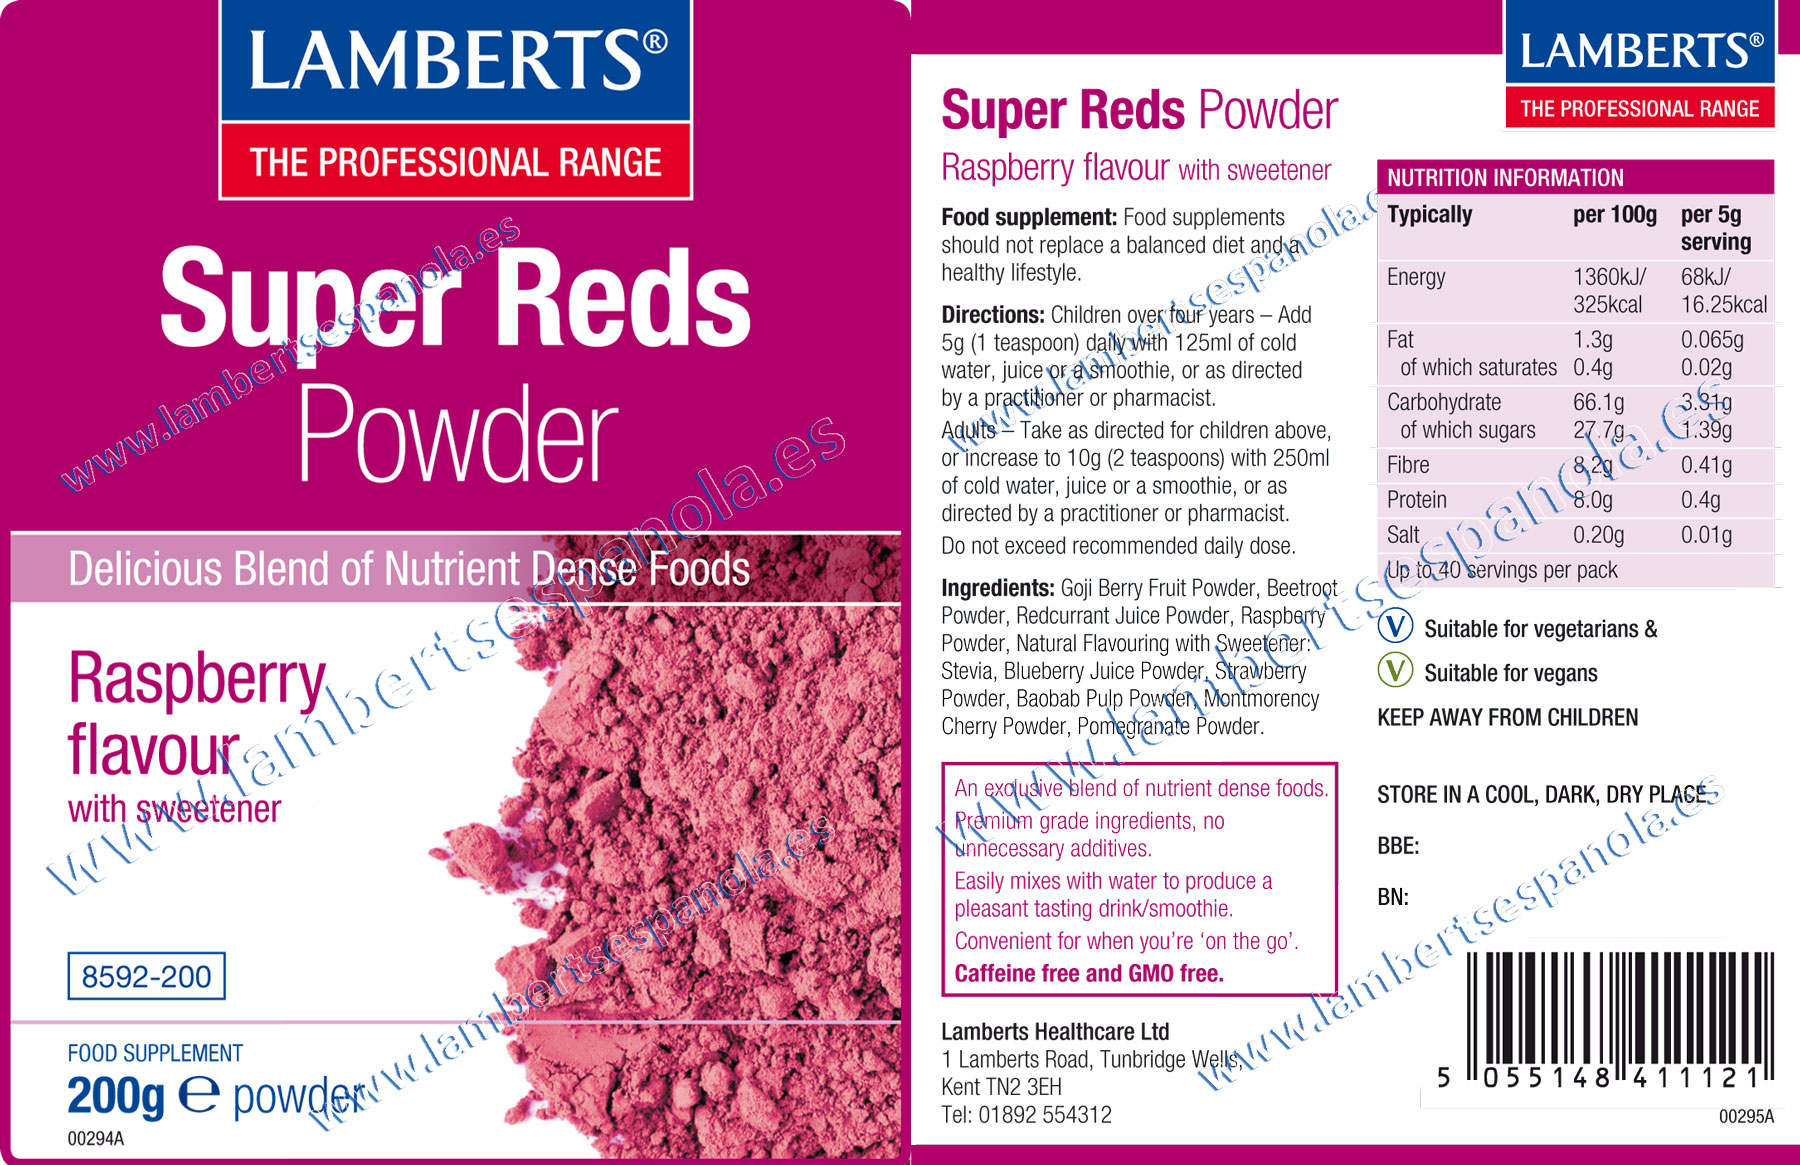 Super Reds properties